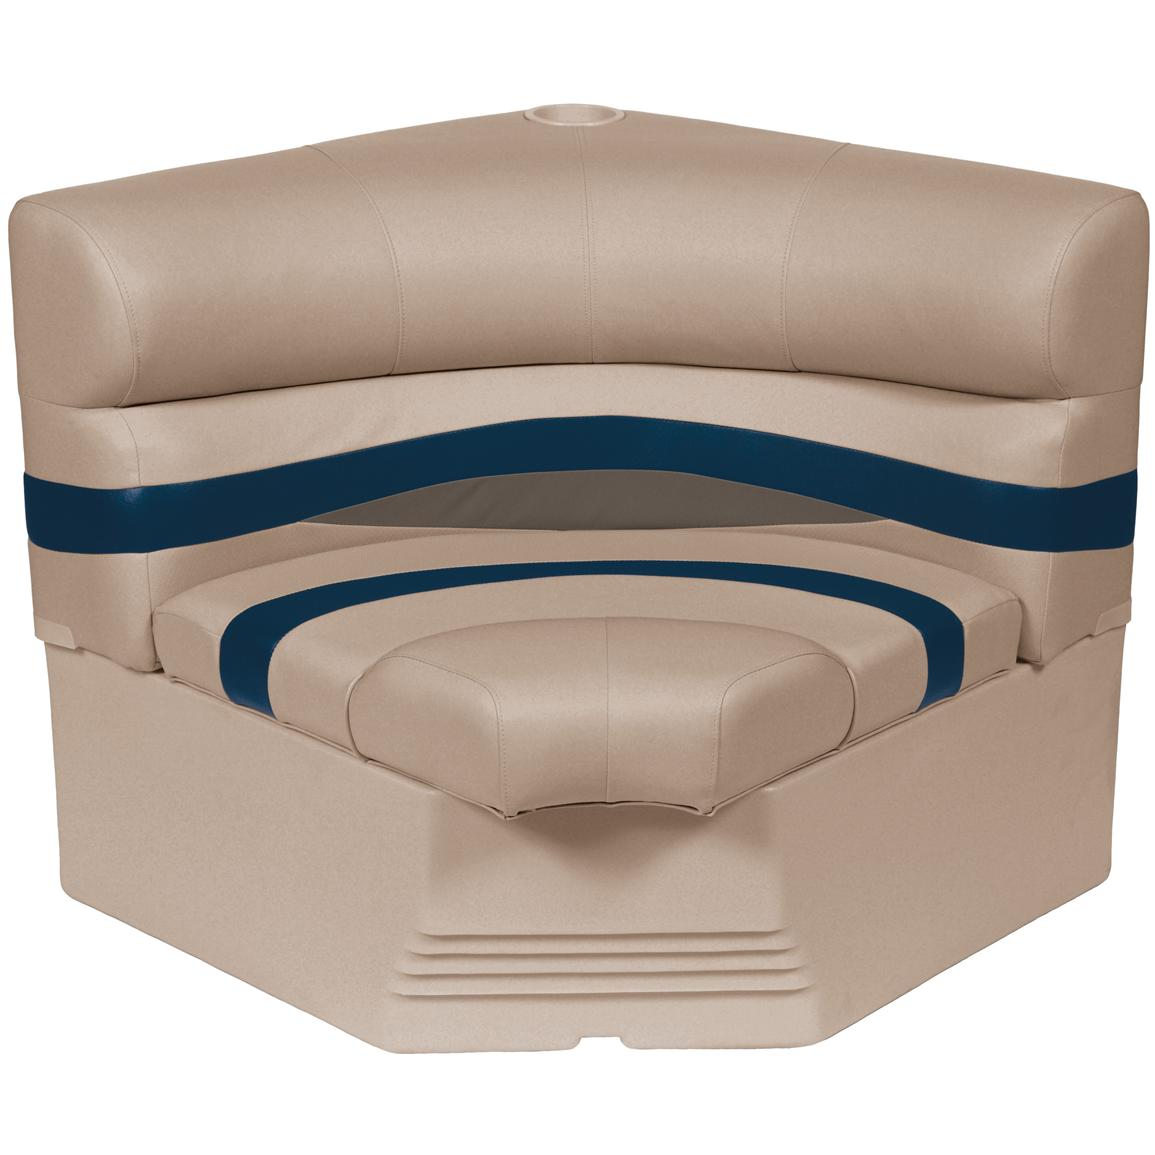 Wise® Premier 1100 Series 32 inch Pontoon Radius Corner Seat, Color D